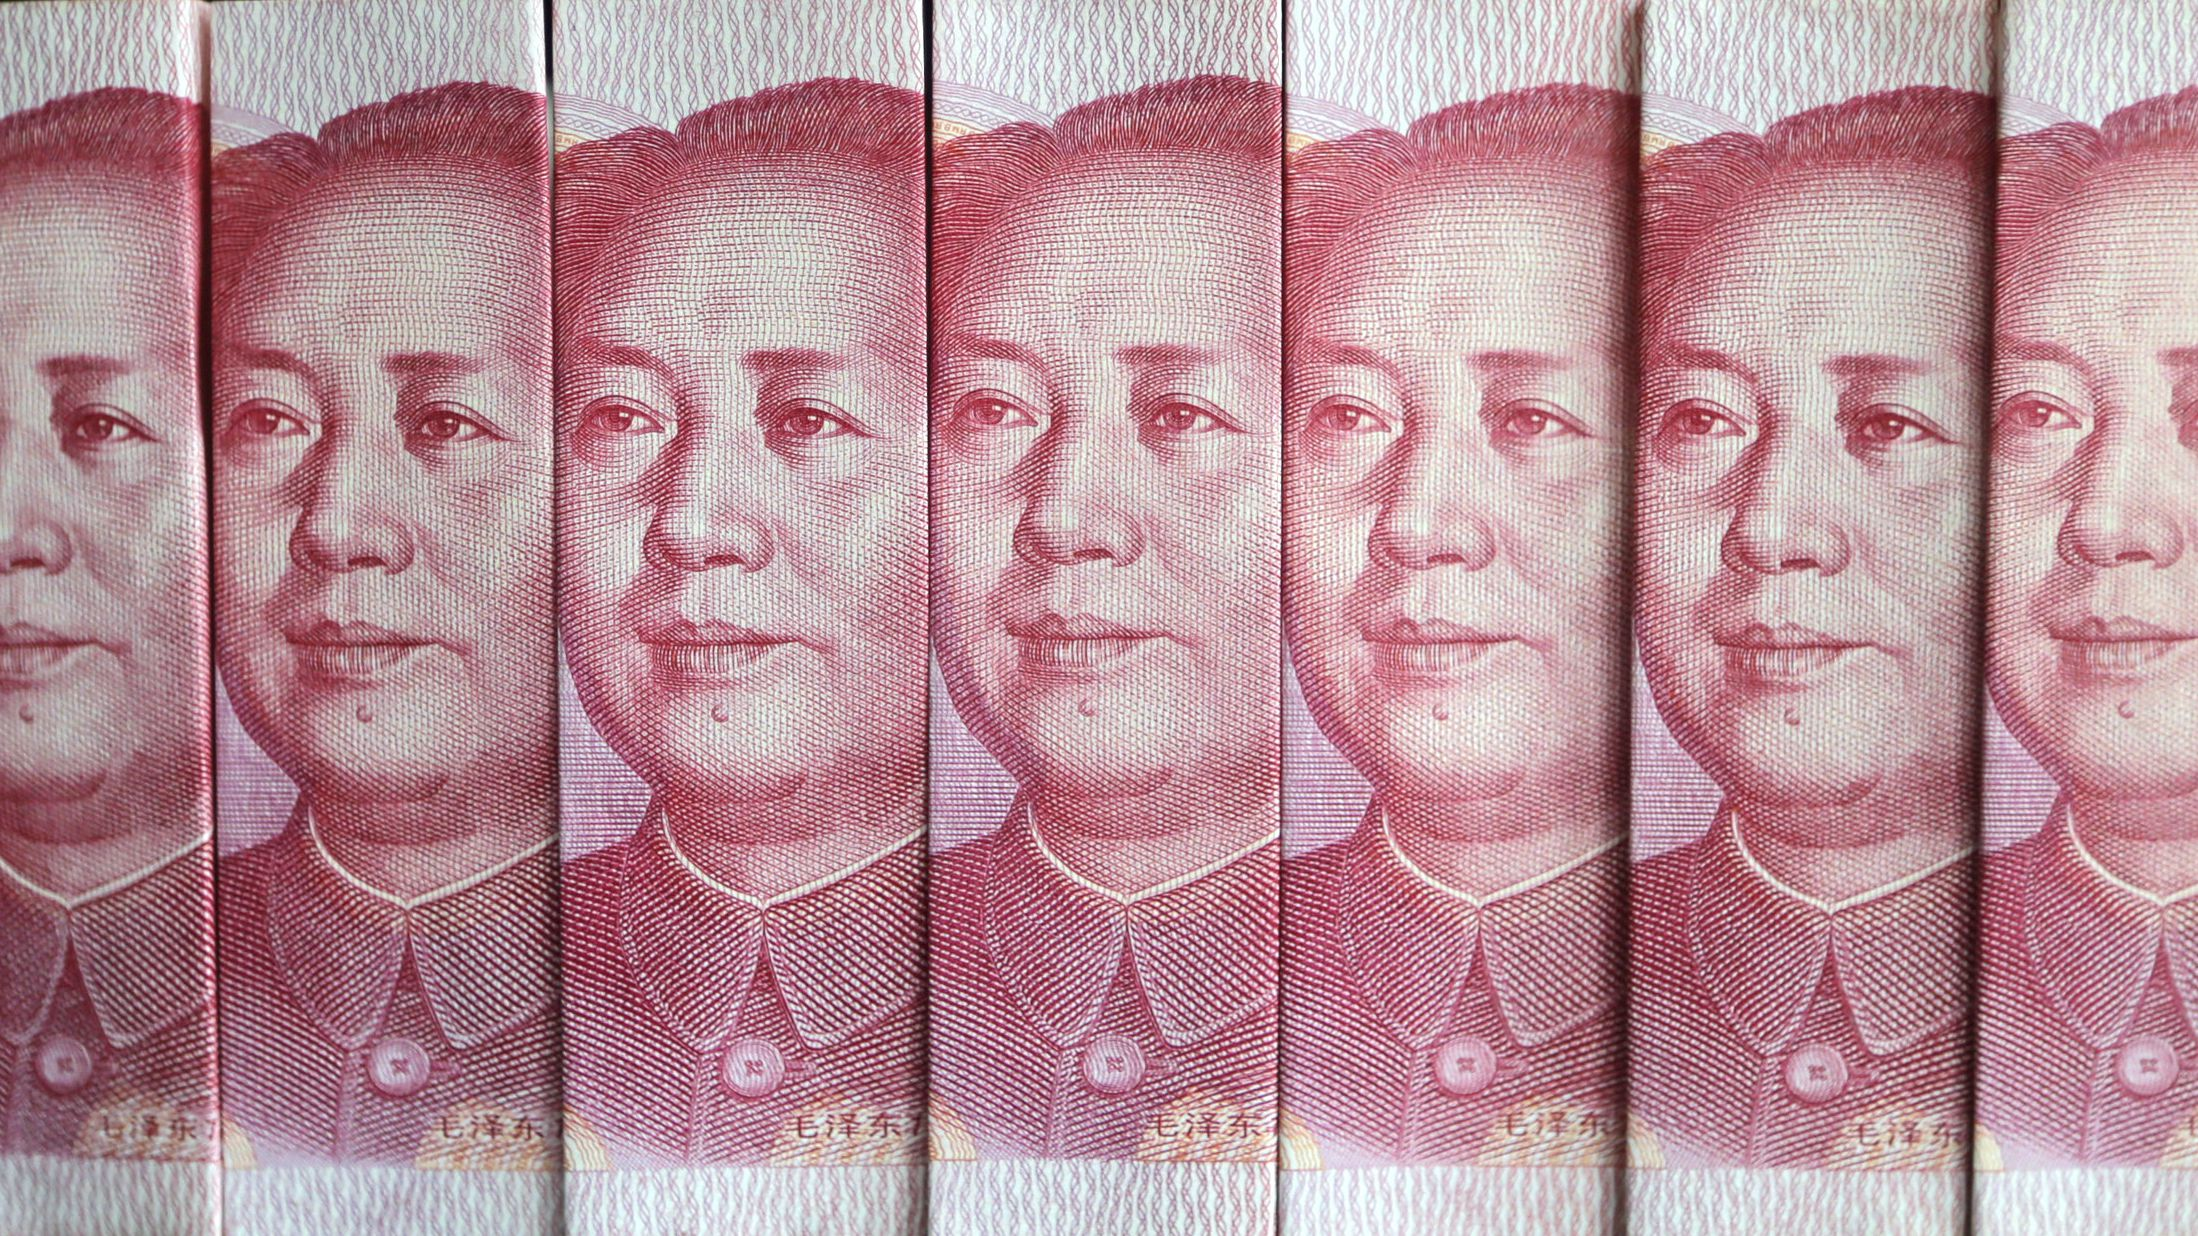 Chinese 100 yuan banknotes are seen in this picture illustration taken in Beijing July 11, 2013. China's central bank has standardised rules on cross-border yuan transactions for domestic banks and companies, the latest step to boost the yuan's global influence. REUTERS/Jason Lee (CHINA - Tags: BUSINESS TPX IMAGES OF THE DAY)